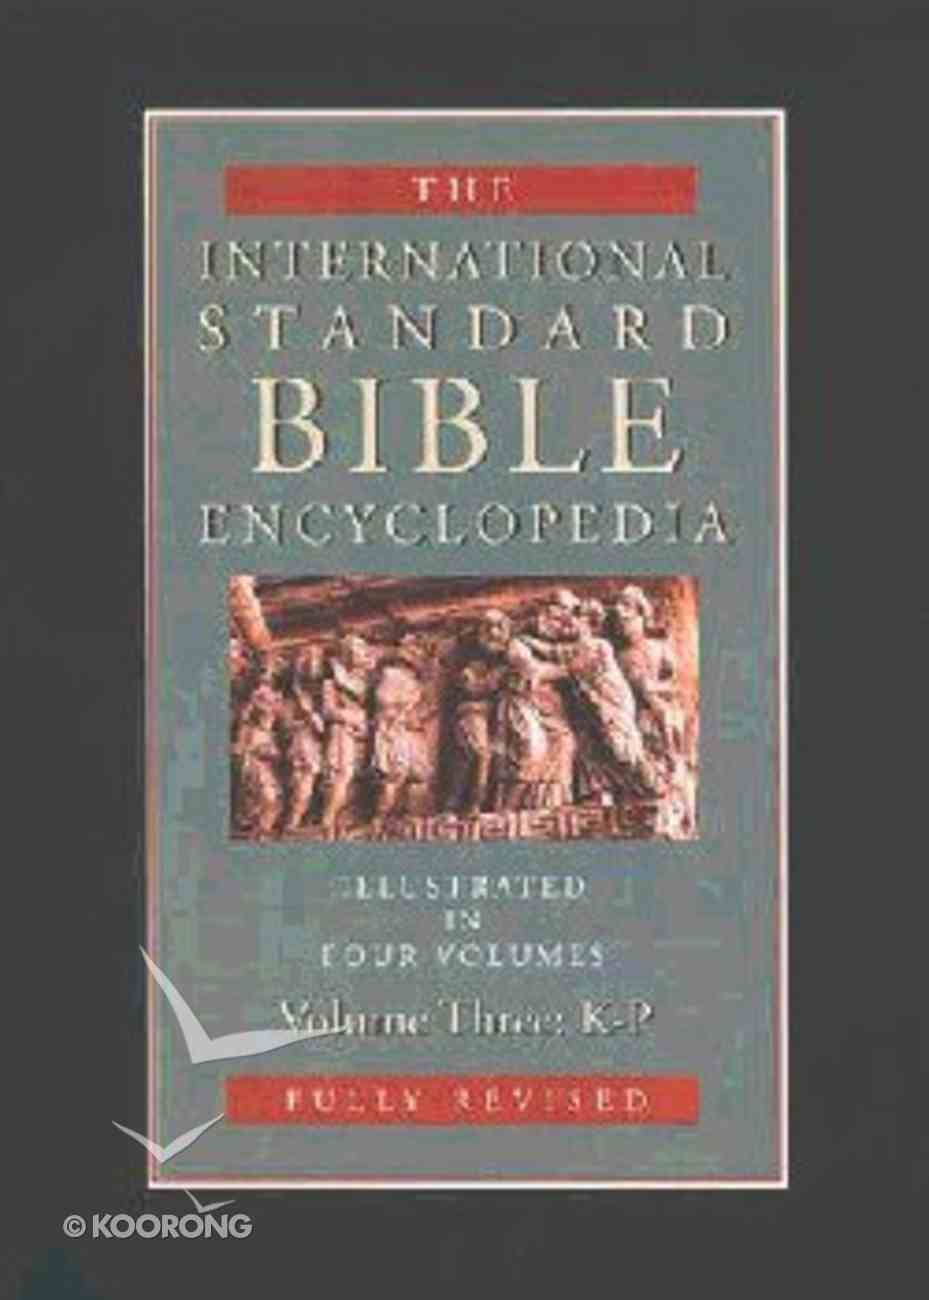 Isbe Intl Standard Bible Encyclopedia (Revised) (Volume 3) (International Standard Bible Encyclopedia Series) Hardback